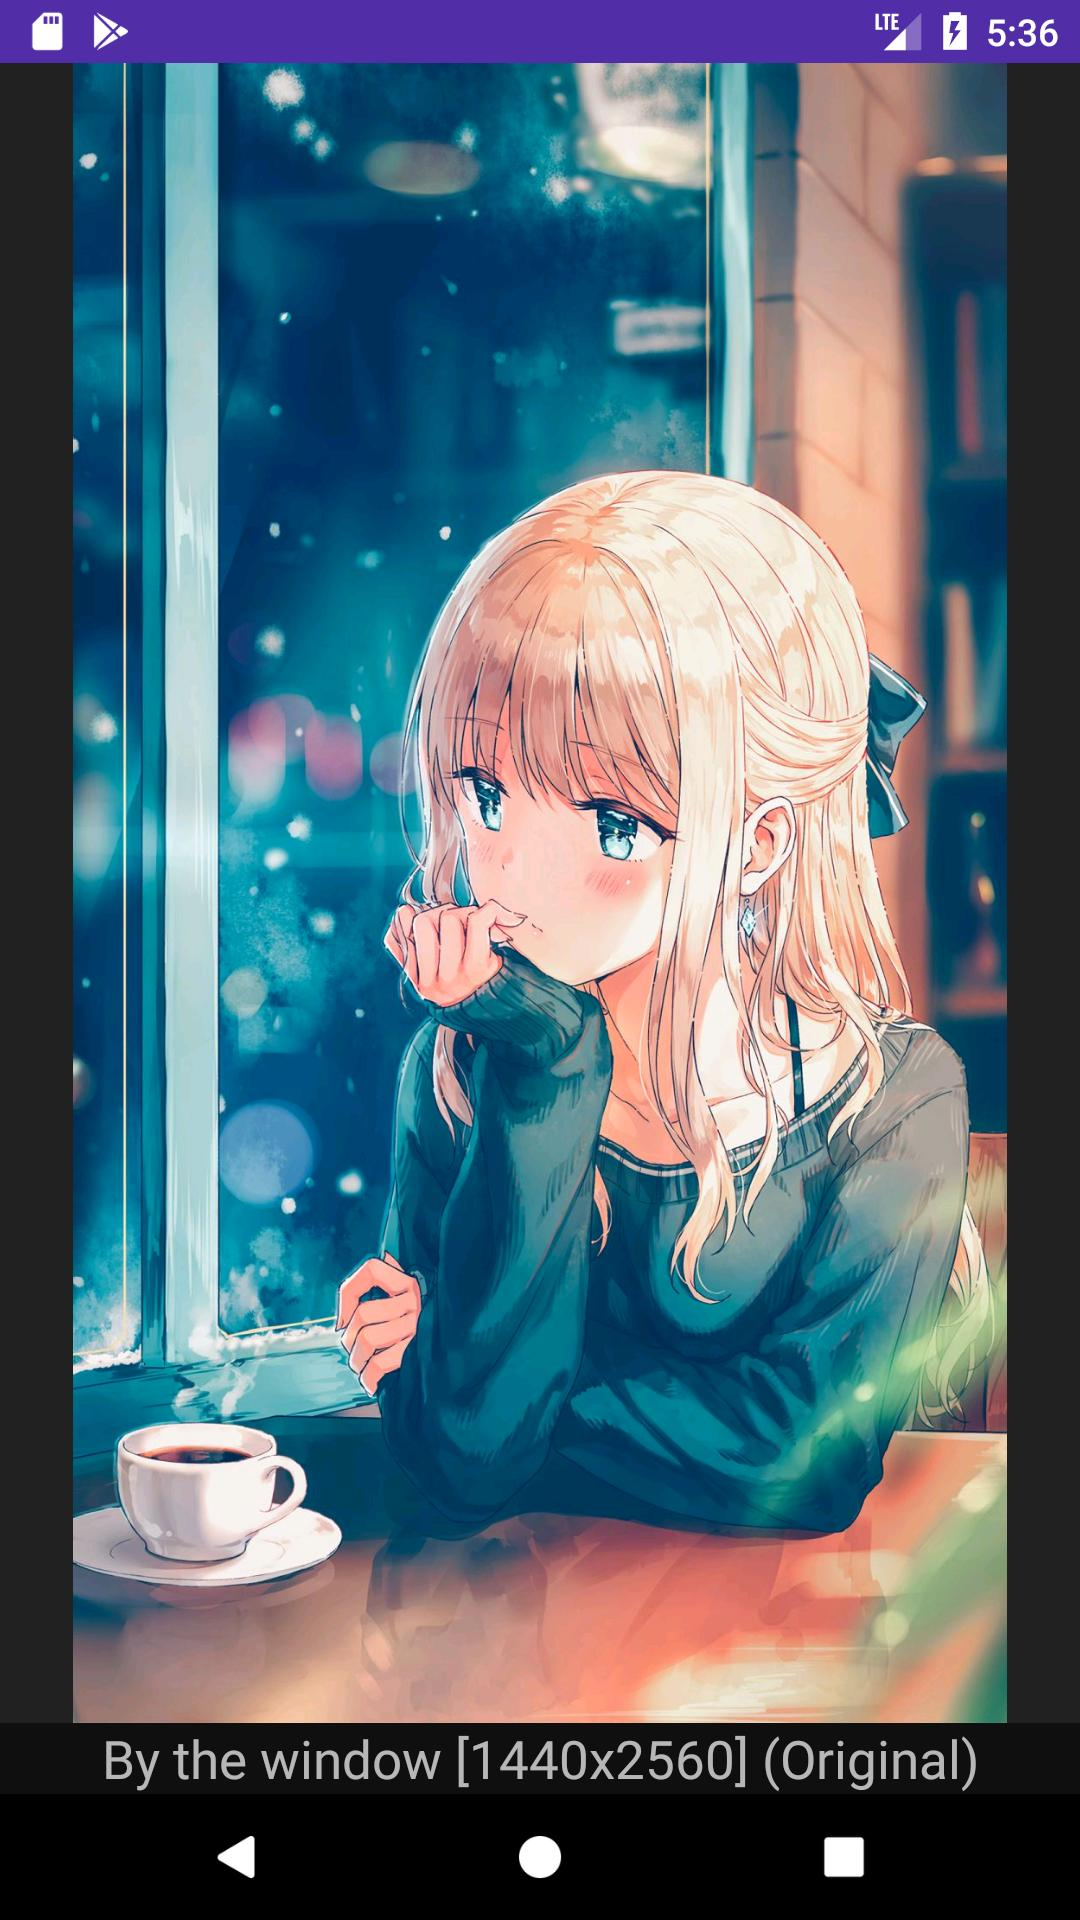 Anime Gif Wallpapers for Android - APK Download